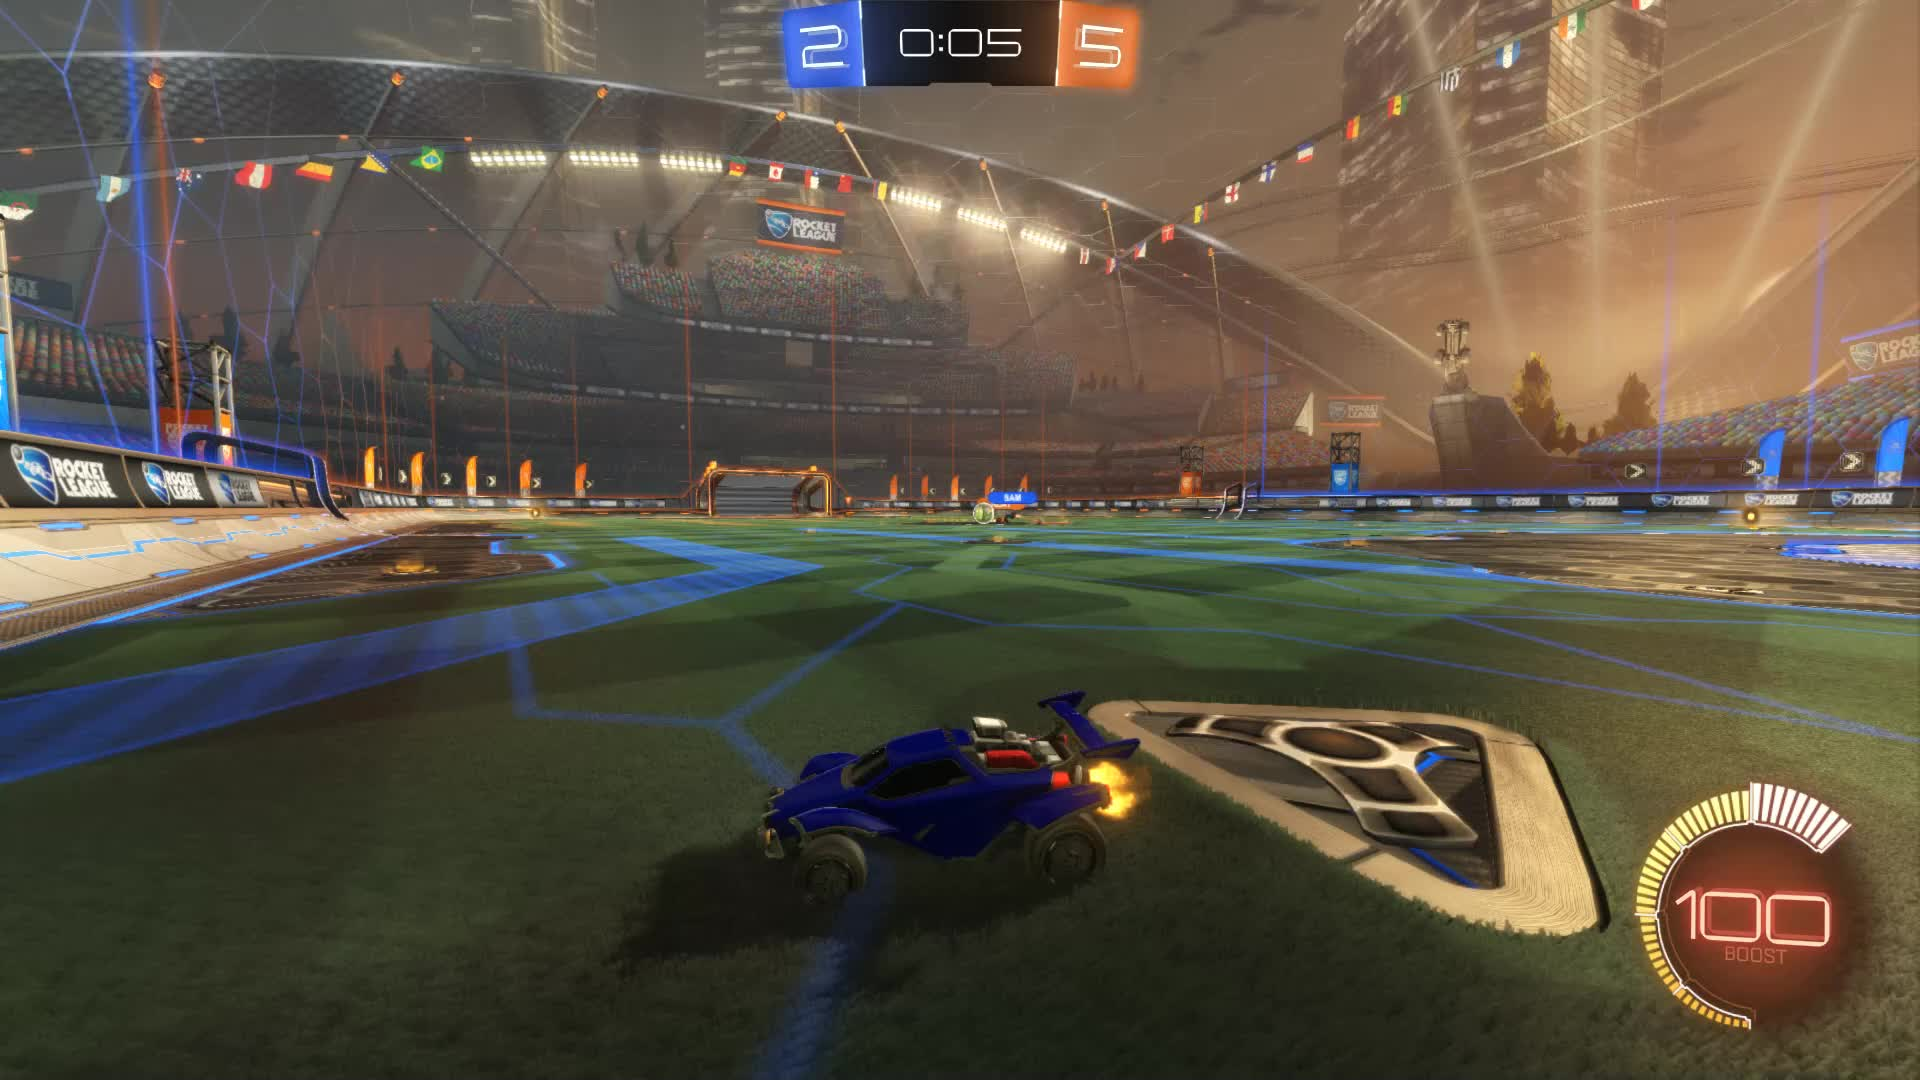 Gif Your Game, GifYourGame, Goal, Rocket League, RocketLeague, TECHNONINJA, Goal 8: TECHNONINJA GIFs